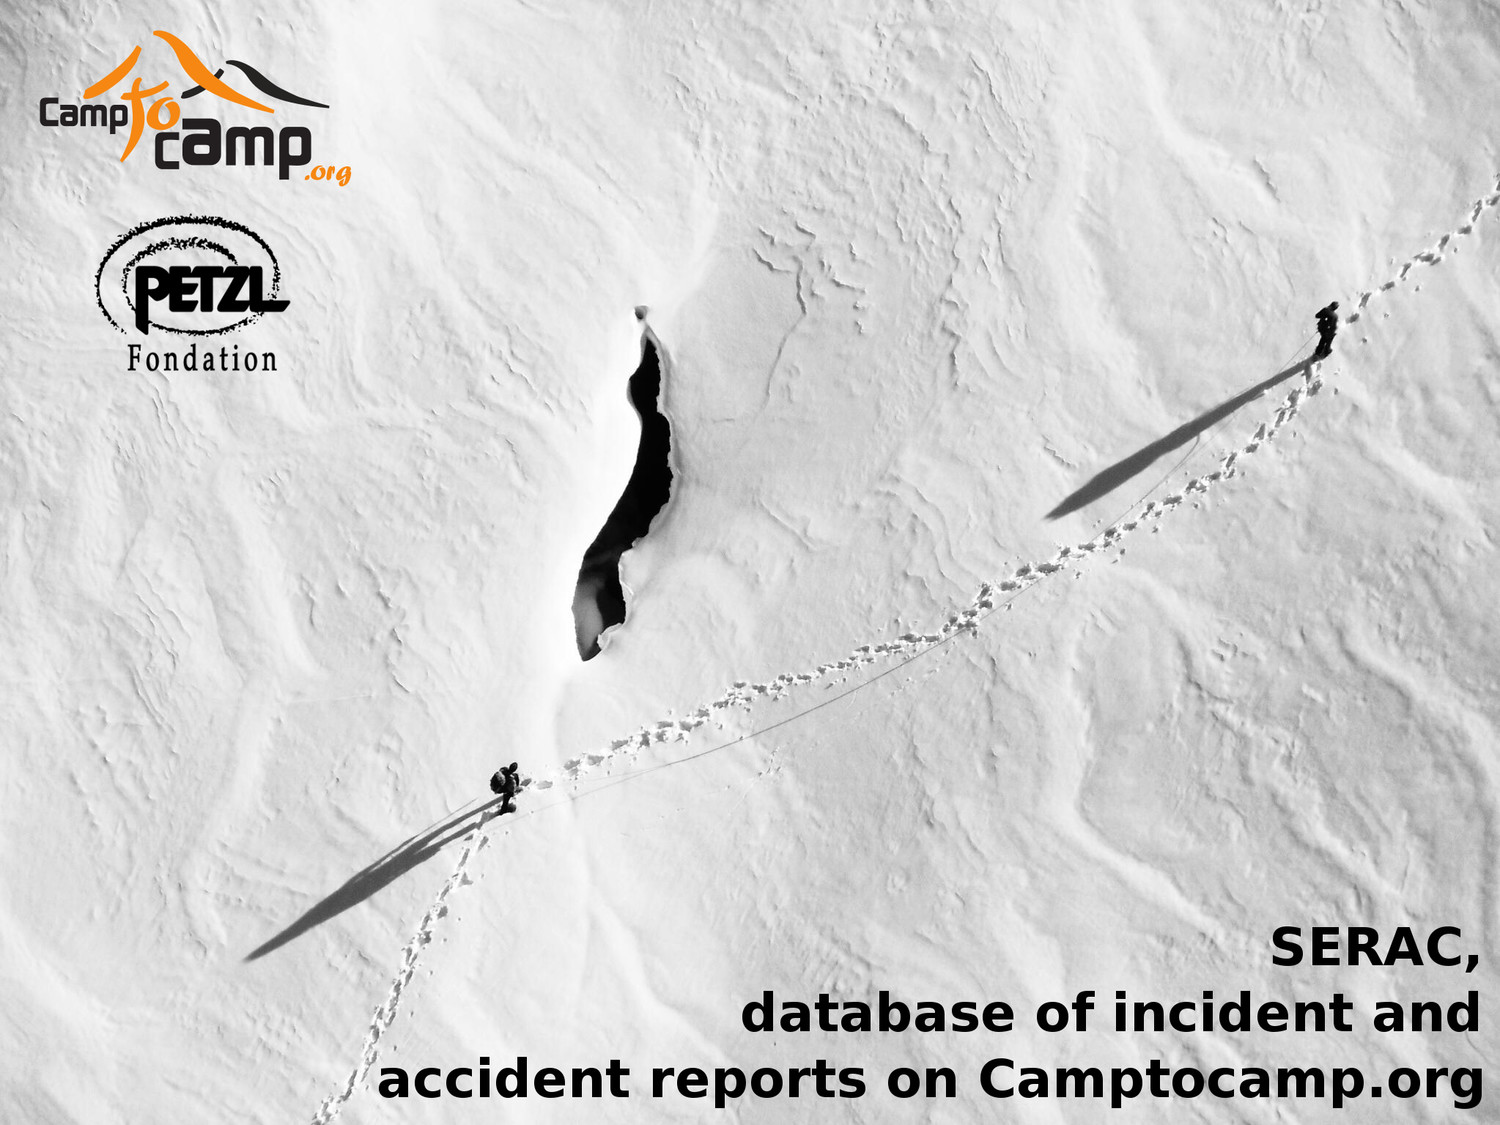 SERAC database of incident and accident reports